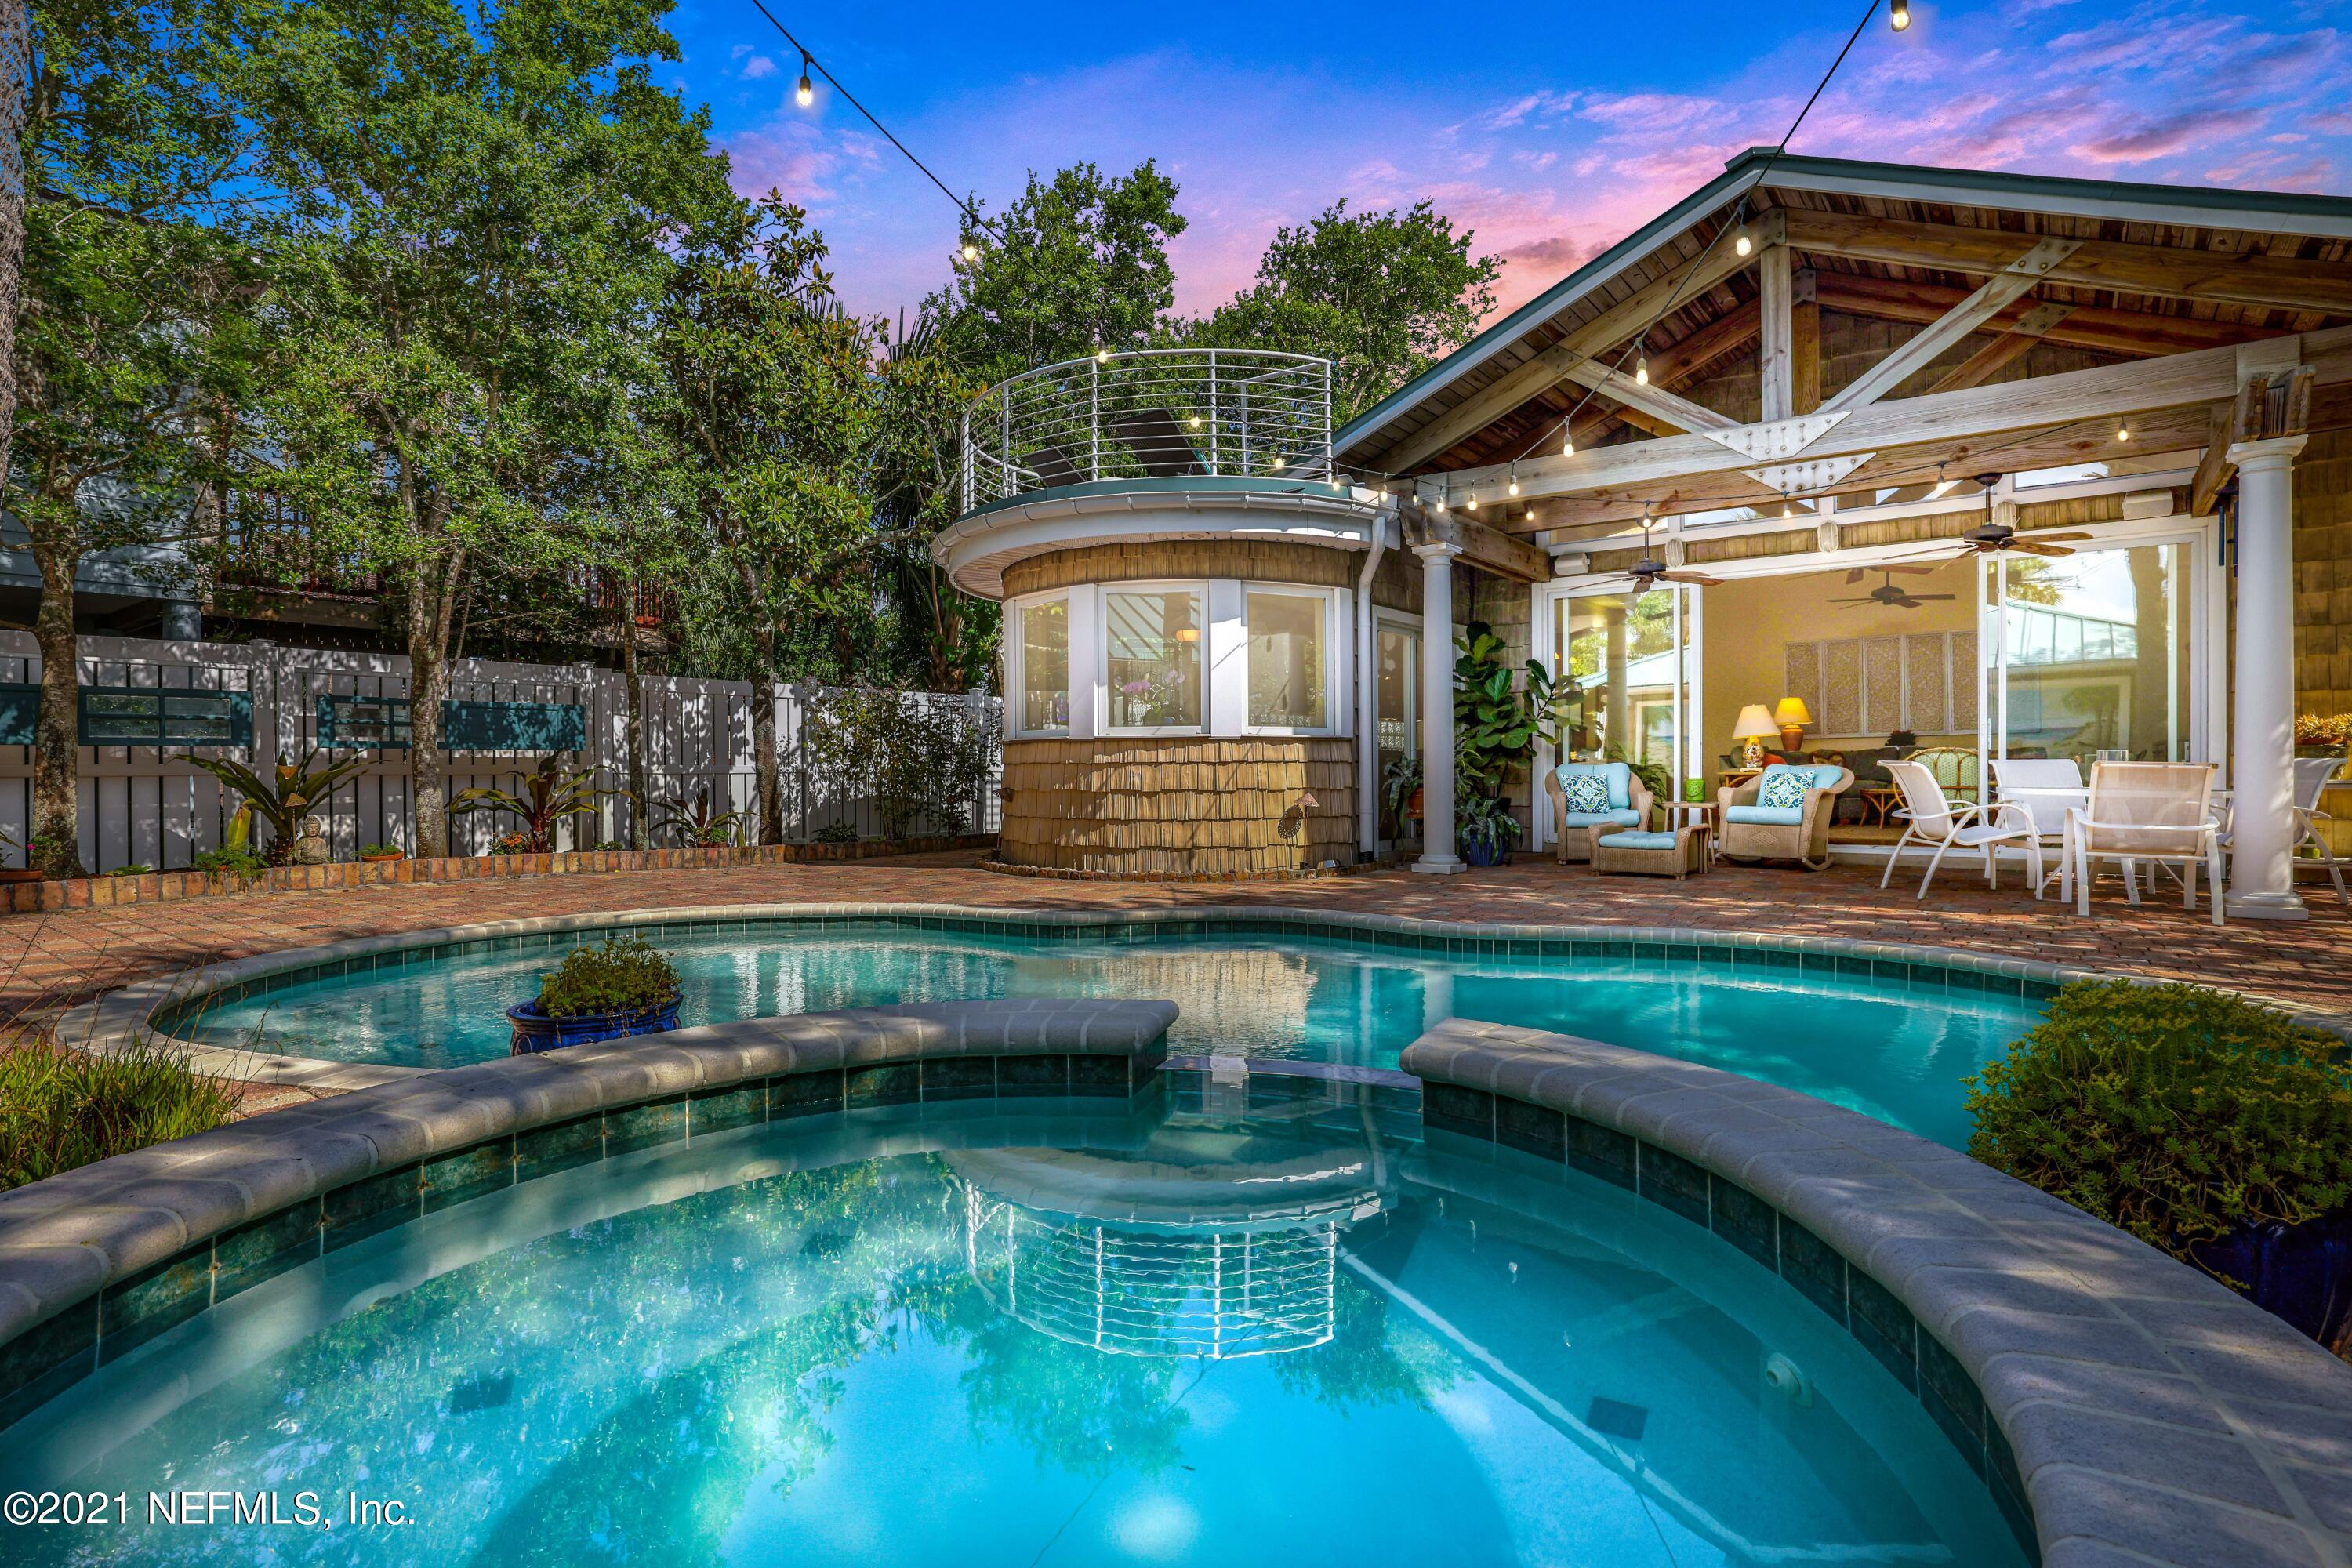 """Welcome to ''The Oasis'' on Walnut St in Neptune Beach.  A One-of-Kind, Custom, Quality Constructed, Well Maintained, Private Seclusion East of 3rd Street is Just Steps to the Ocean & the Desirable Beaches Town Center. At 2,600+ Square Feet with 3 bedrooms & 3.5 bathrooms, This Vintage Property was Taken to the Studs & Totally Renovated in 2003 Adding a Great Room, Kitchen, Laundry, 2.5 Car Detached Garage w/Attic, Saltwater Pool, Outdoor Shower & Full Pool Bath. An Entertainers or Family Fun Dream Layout with Oversized Sliders Leading from the Great Room to the Covered Lanai & Pool Courtyard.  Nestled in a Lush Tree Canopy on an Oversized 50' x 135' Lot, this 30s Style Coastal Home Offers Privacy in an Urban Setting with Low to No Maintenance. No Grass to Cut, Just Florida Friendly Landscaping w/ Well Irrigation System Making Way for Time to Enjoy the Beach, Walk to """"The Corner"""" or Ride Your Bike Enjoying All the Beach Lifestyle Has to Offer! Honey Maple Shaker Glazed Cabinetry throughout with Brushed Bronzed Hardware. Quartz Countertops & Windowsills. Kitchen-Aid Stainless-Steel Appliances. Natural Wood Trim Baseboards & 2 Panel 30's Style Doors.  Built in Entertainment Center with Bookshelves, Cabinets and Wet Bar.  Gorgeous Tongue and Groove Pine Wood or Bead Board & Beam Ceilings in Great Room, Sitting Room, Office, Primary Bathroom & Open Lanais. Note the Faux Painted Speakers, Lights & Vents to Match the Wood Ceilings Throughout the Interior. The Upstairs Primary Suite has a Large Bedroom with Vaulted Ceiling, Sitting Room & Office/Flex Room with the Restored Pine Floors. The Bathroom has a Double Vanity and Oversized Shower with Jetted Spa Tub & a Custom Tile Inlay from Hibernia/Australia.  Large Walk In Closet with Organization System. The 2nd Story Lanai & Balcony has Trex Decking with Powder Coated Railings. Downstairs You'll Find Natural Oak Wood Floors in the Secondary Bedrooms with Large Walk-In Closets. Oversized Neutral Tile in All Wet Rooms.  Arlo S"""